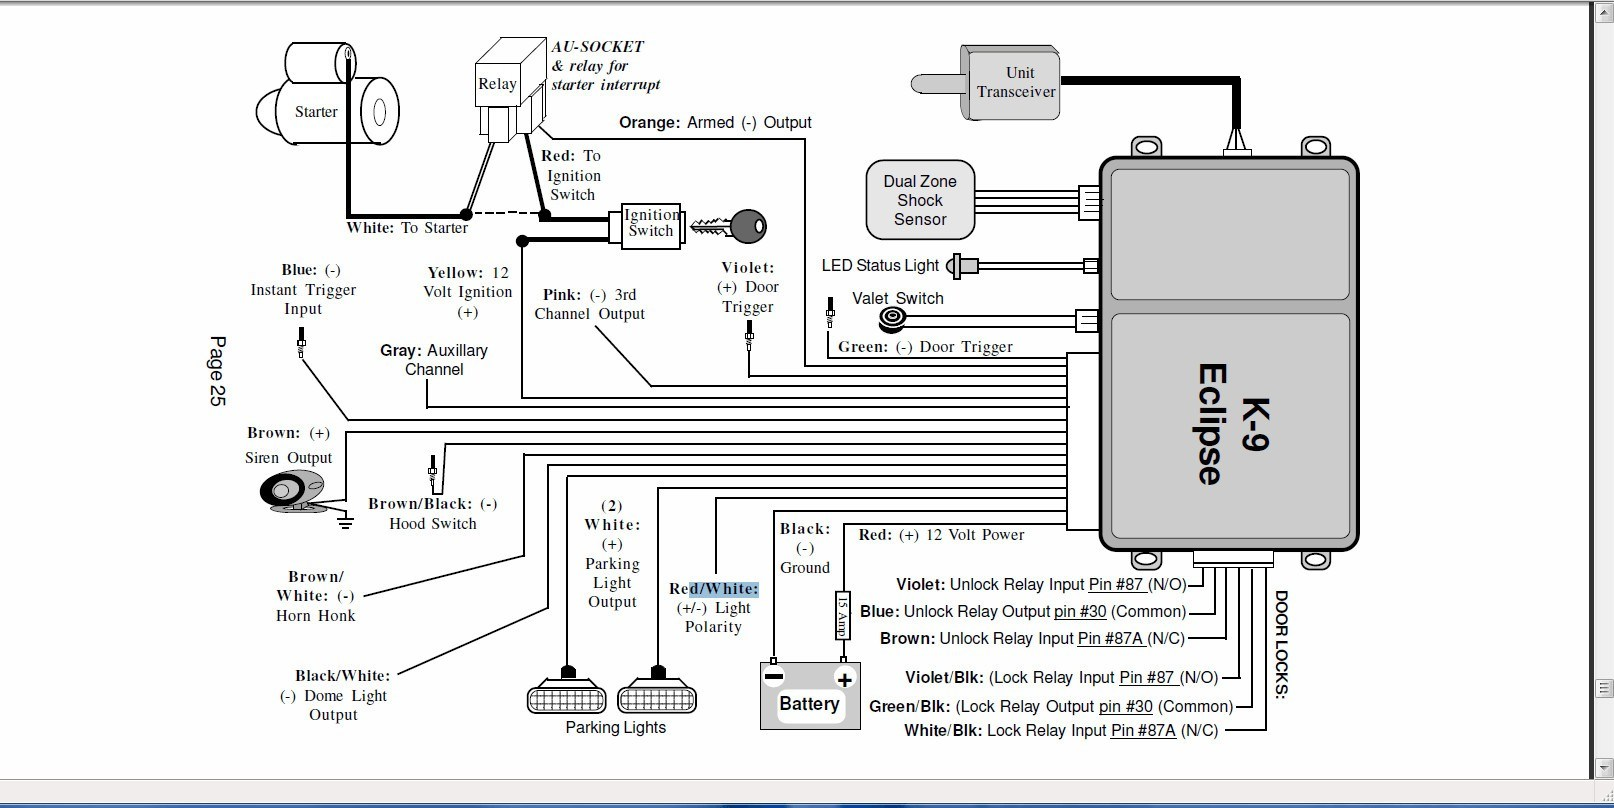 Eton Viper 90 Wiring Diagram from static-cdn.imageservice.cloud